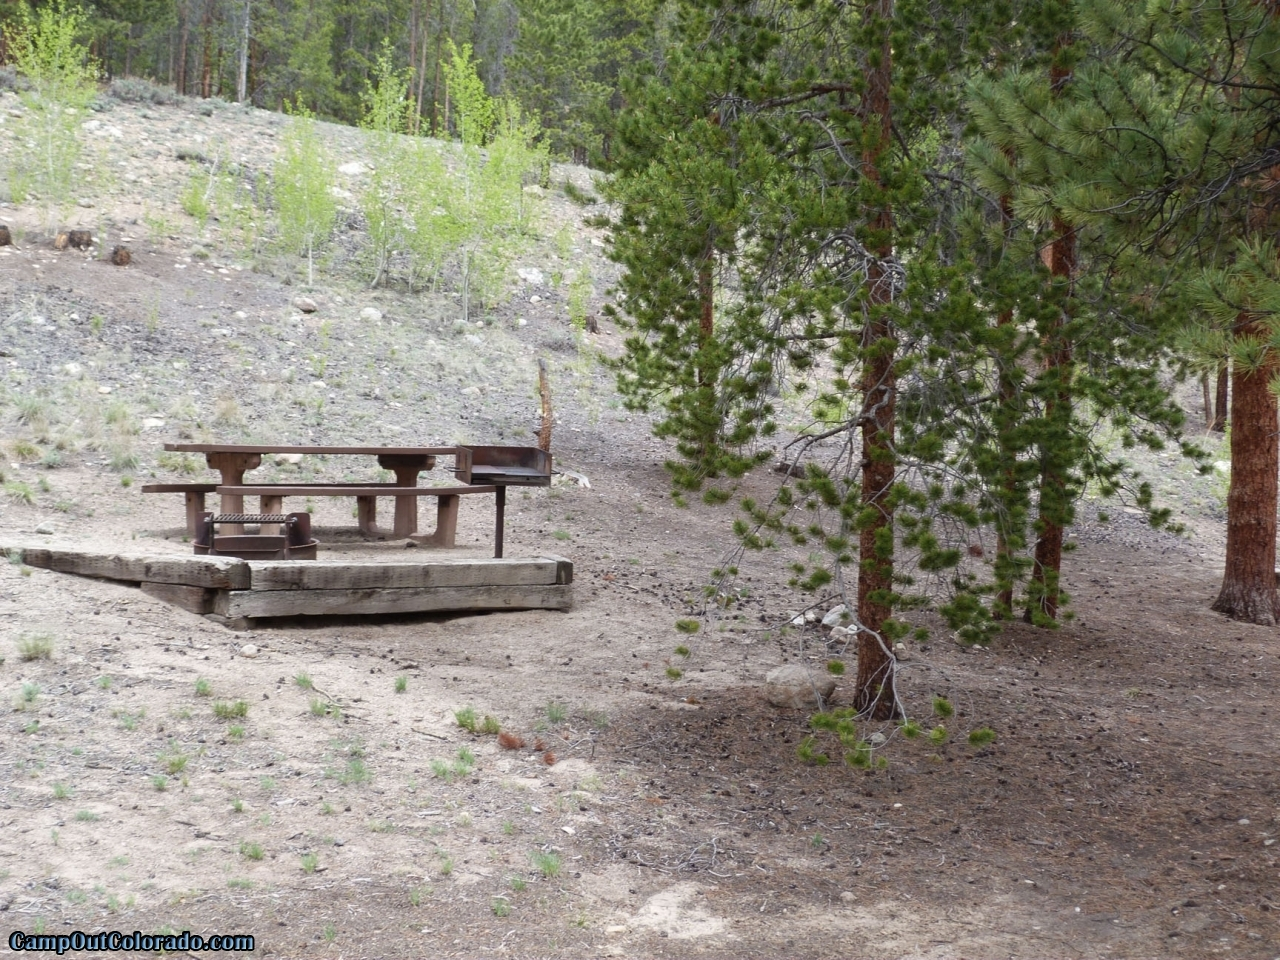 Lakeview Campground Review - Many Different Kinds of Campsites